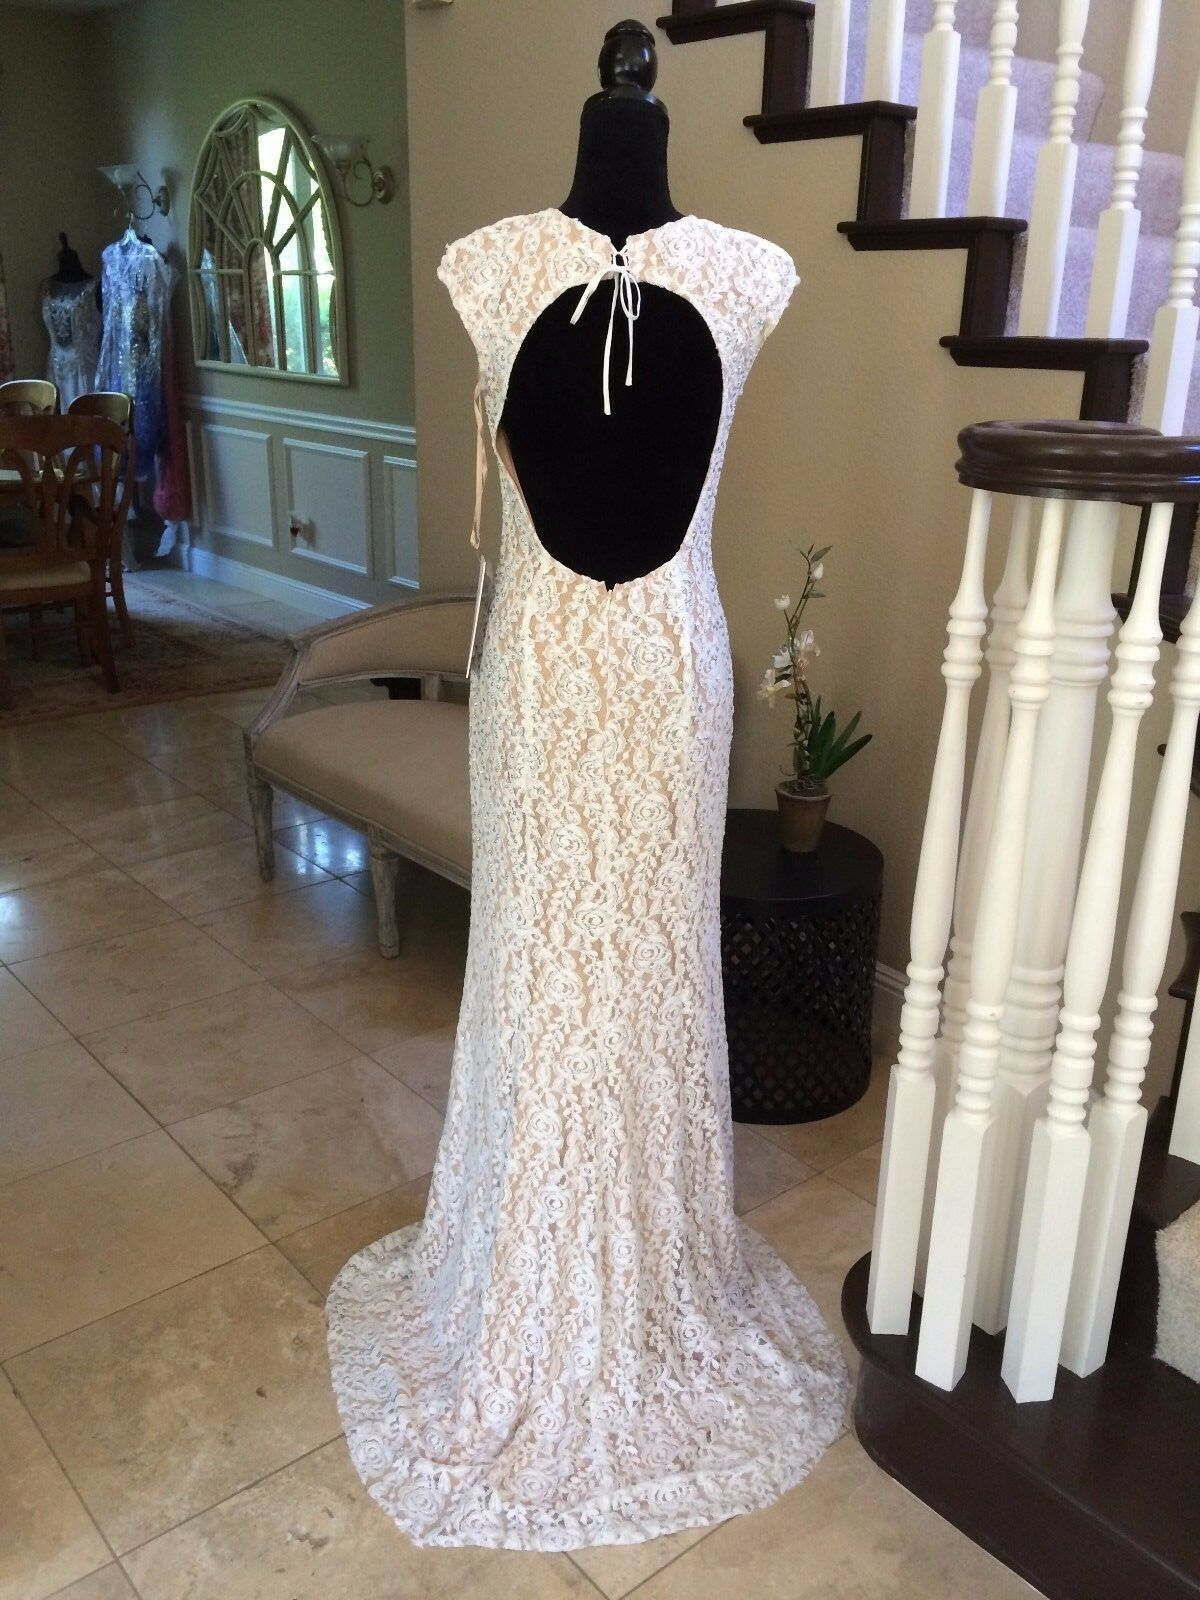 750 NWT LACE JOVANI PROM PAGEANT FORMAL WEDDING DRESS GOWN SIZE 4